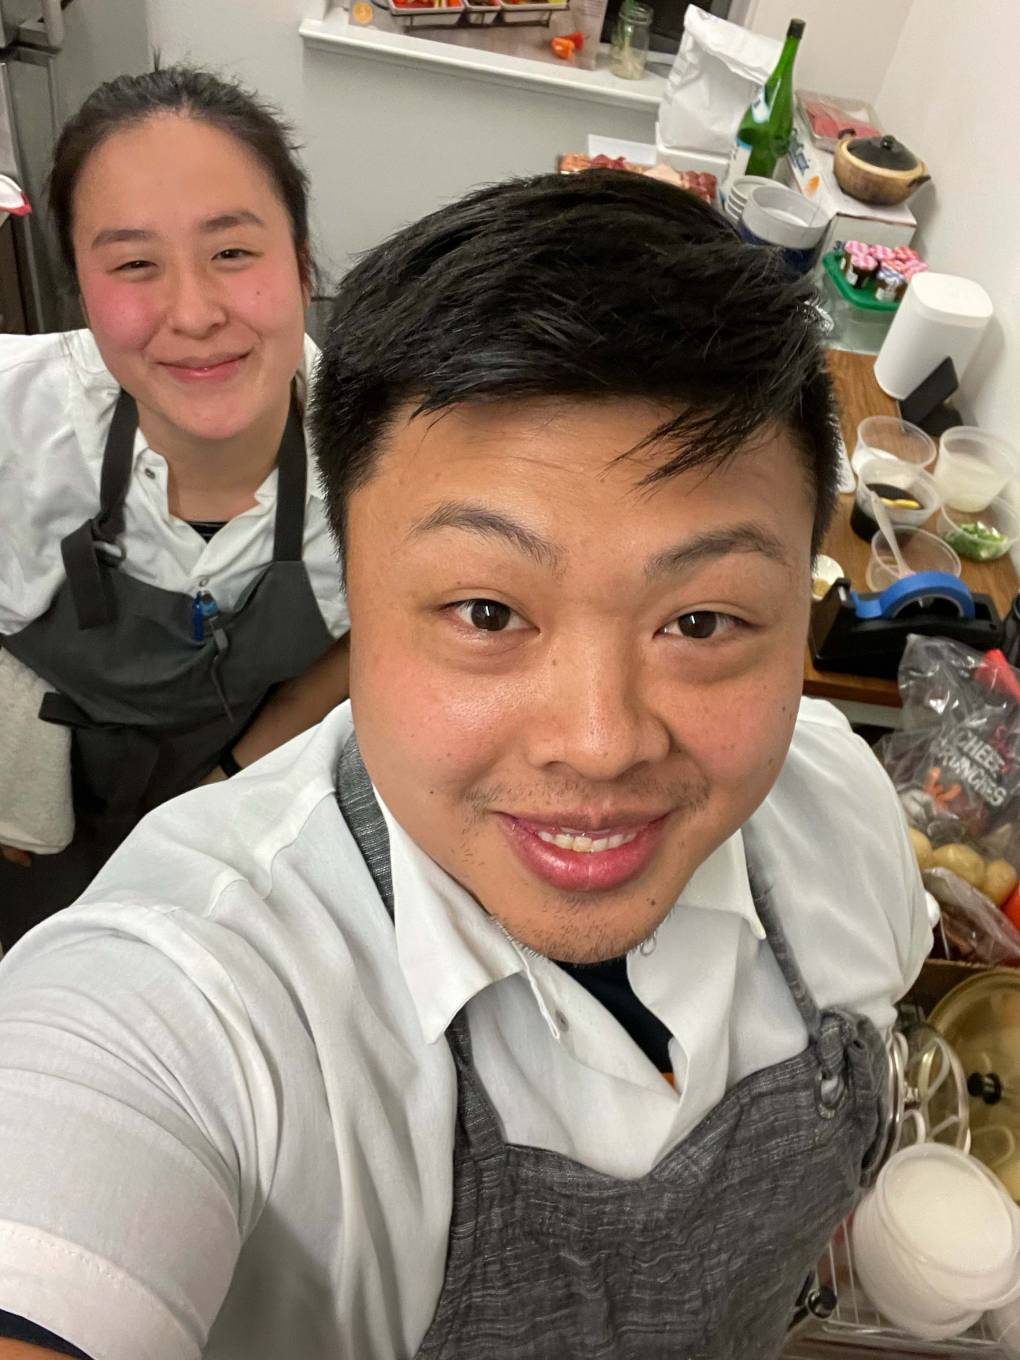 Will Thanapisitikul (left) and Alex Chin in the kitchen